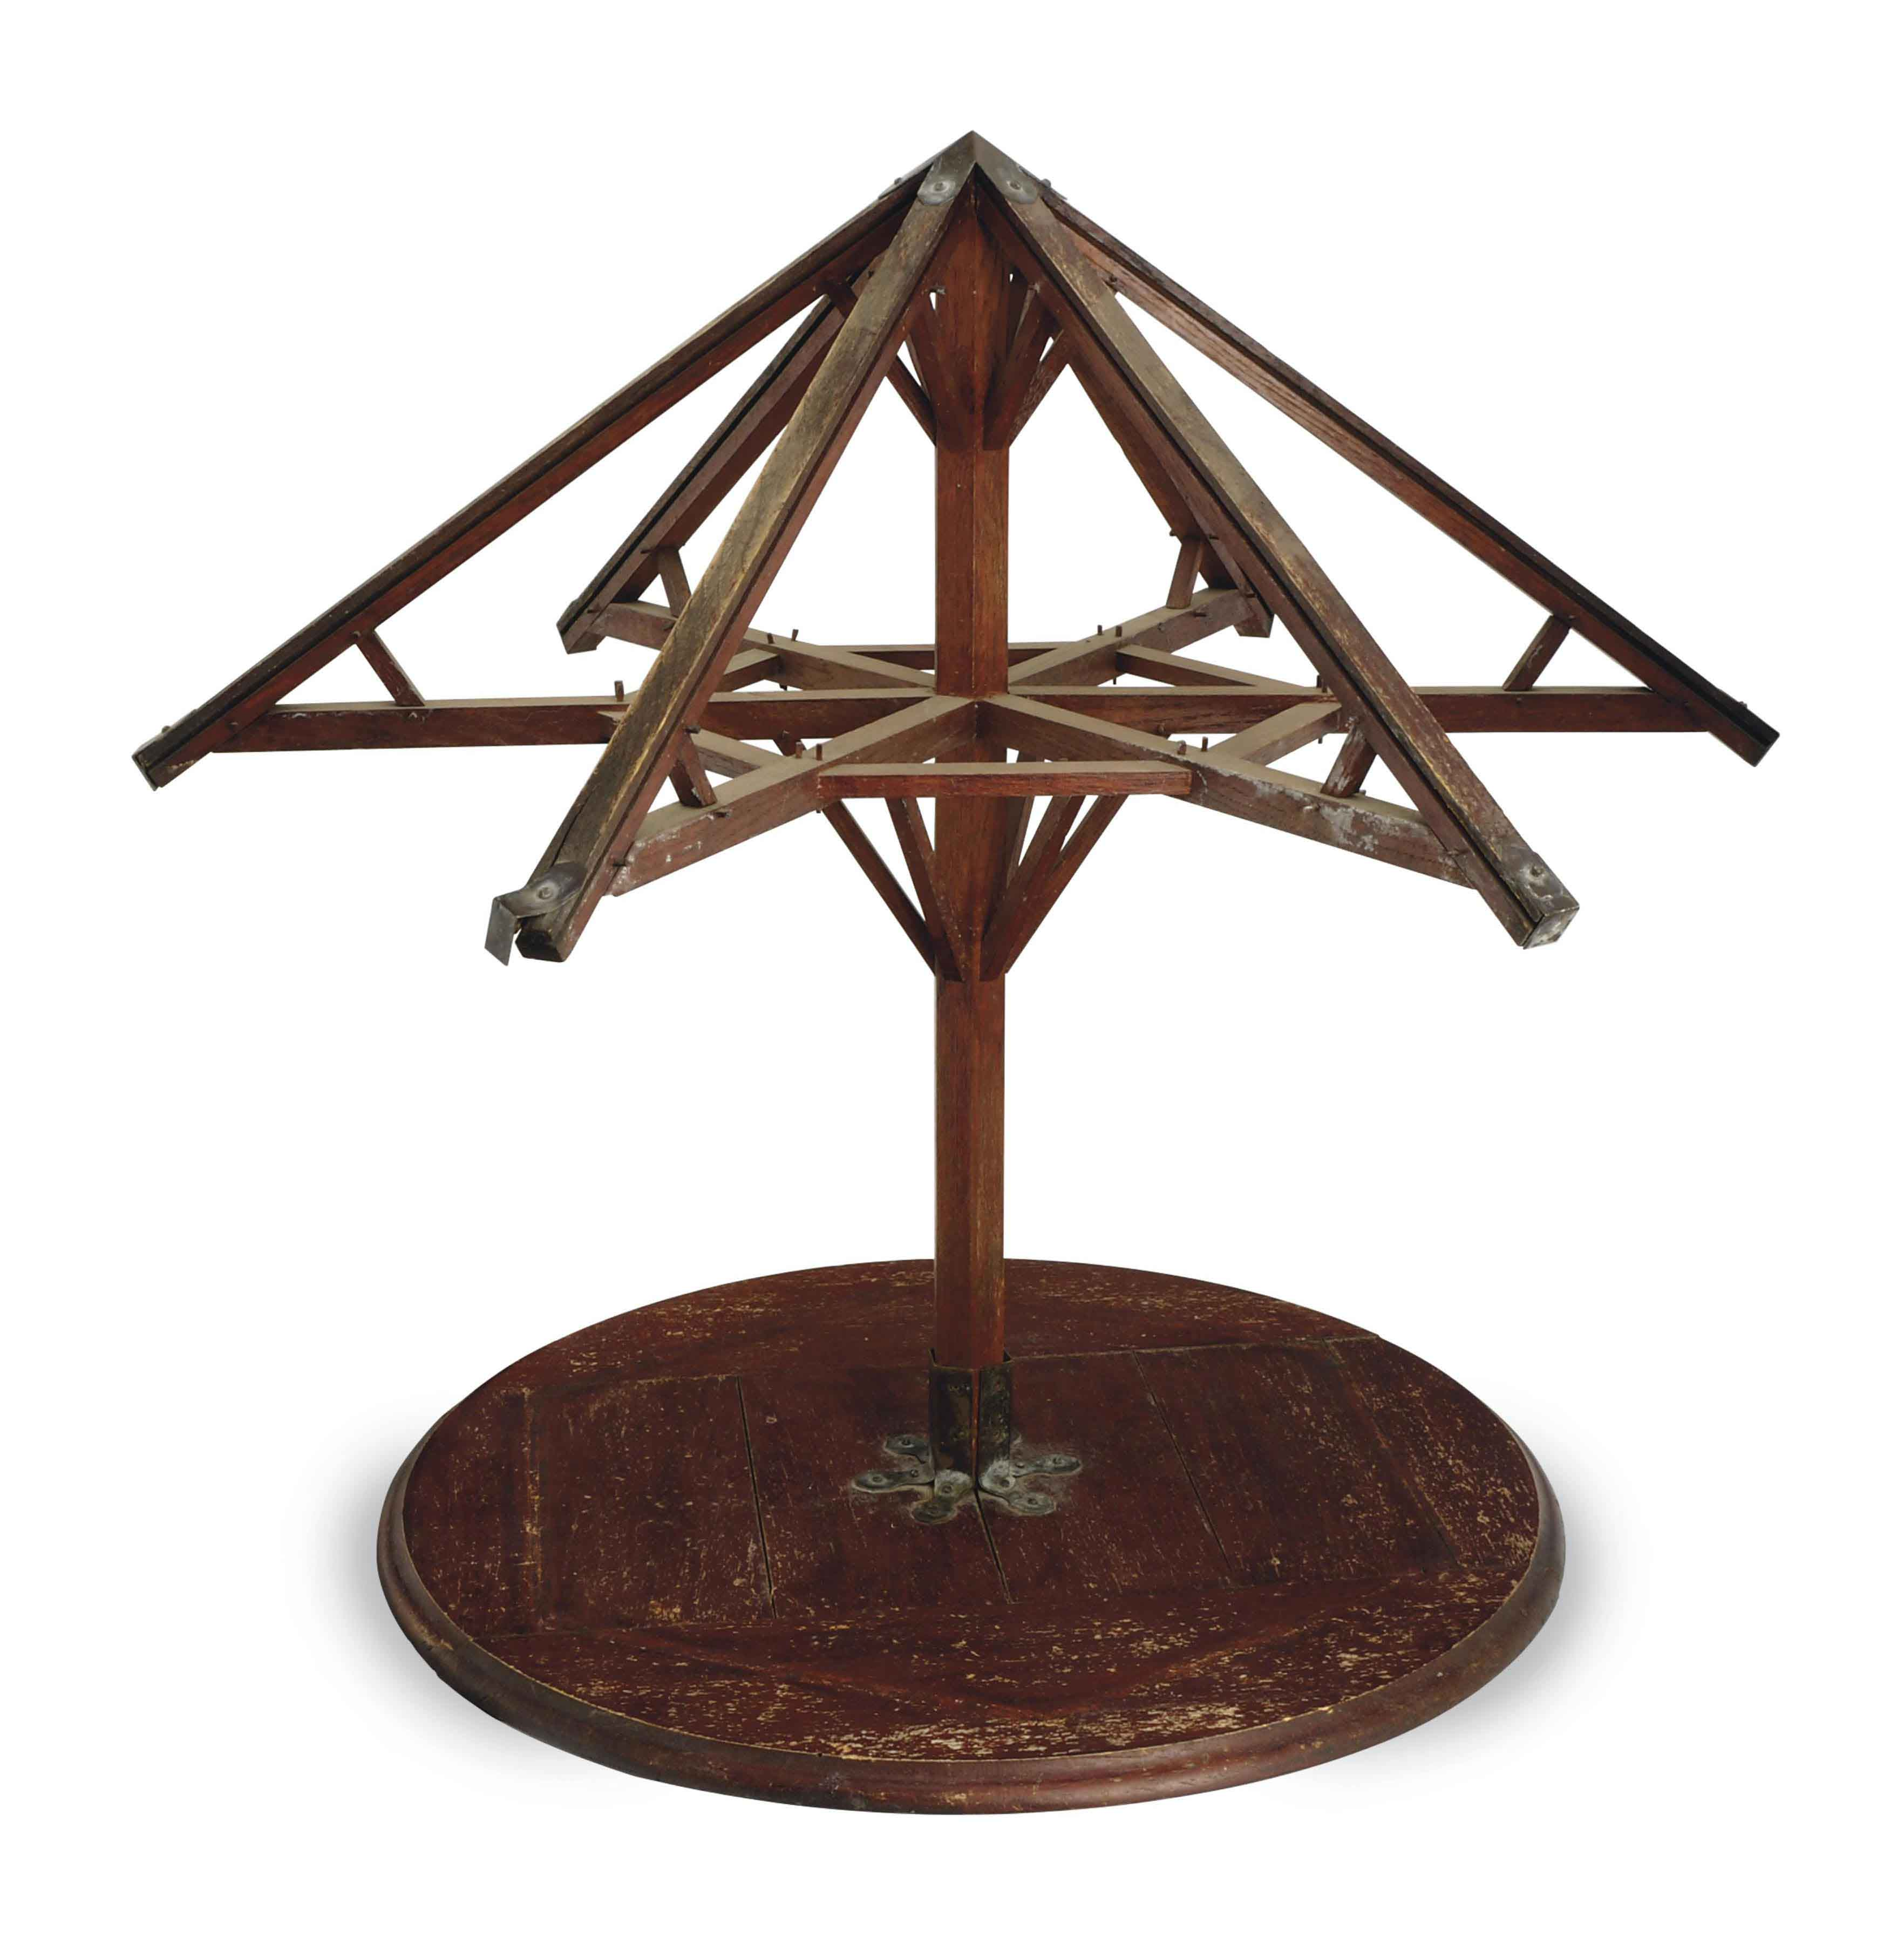 A FRENCH METAL-MOUNTED RED-PAINTED OAK ARCHITECTURAL MODEL OF A ROOF,